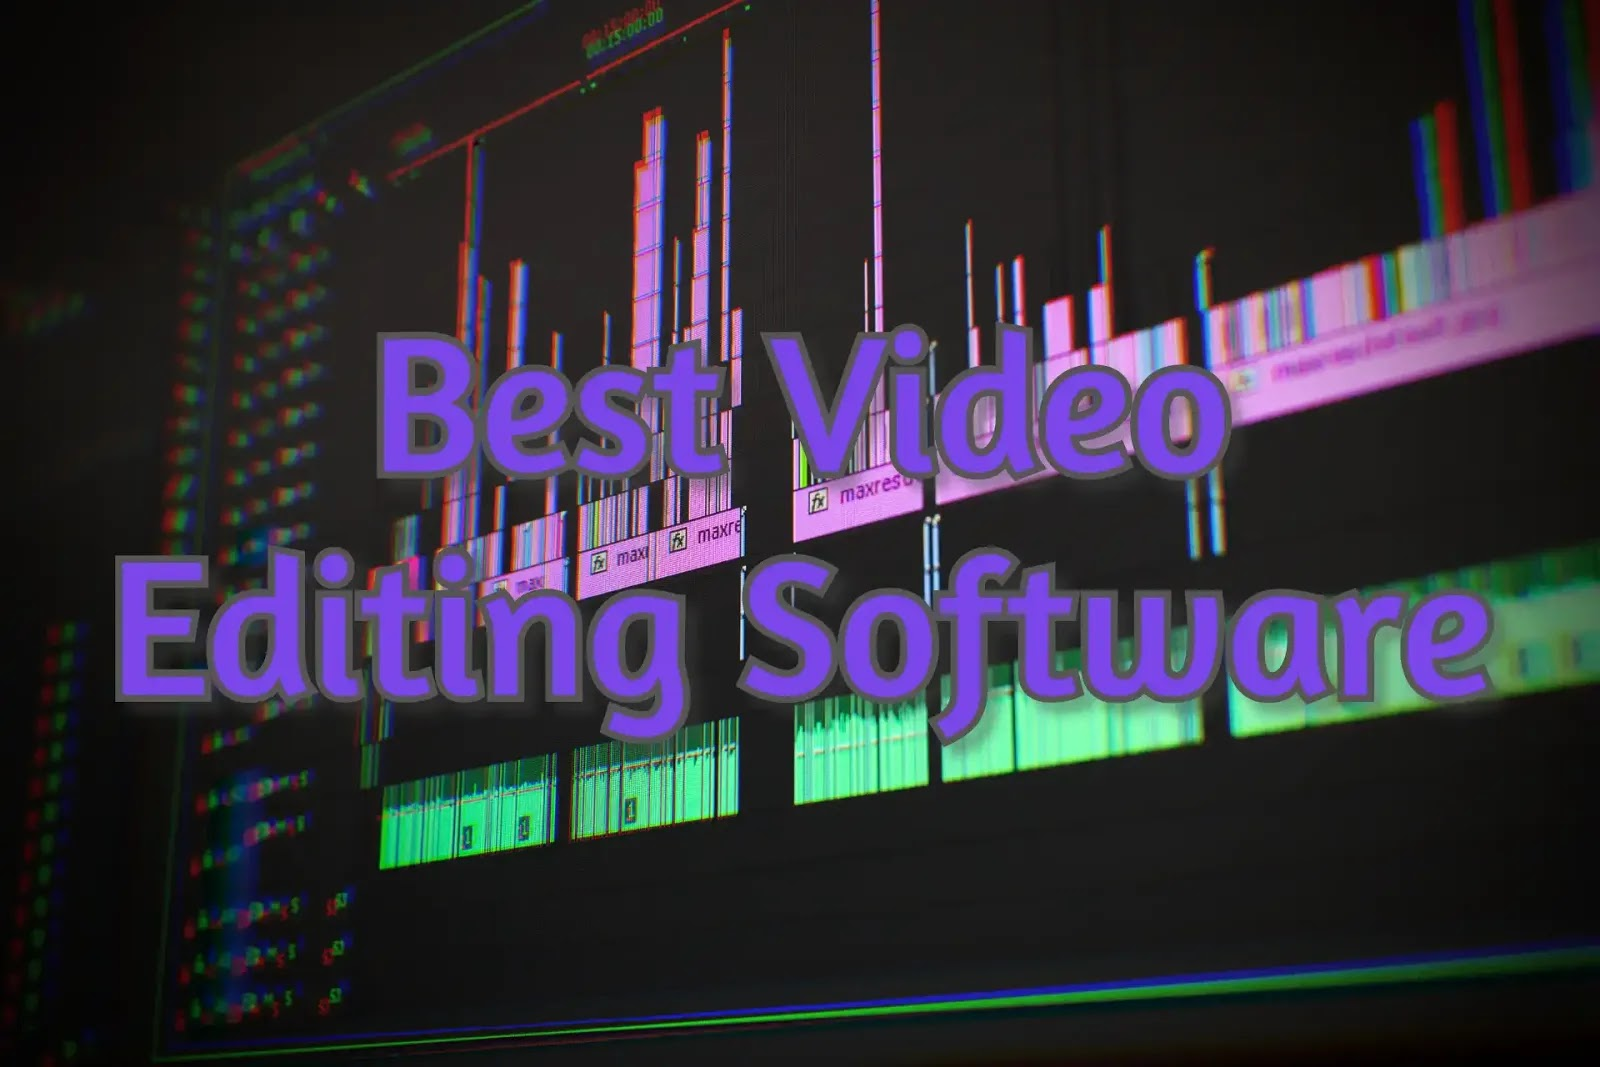 Top 5 Best Video Editing Software Program for Beginners